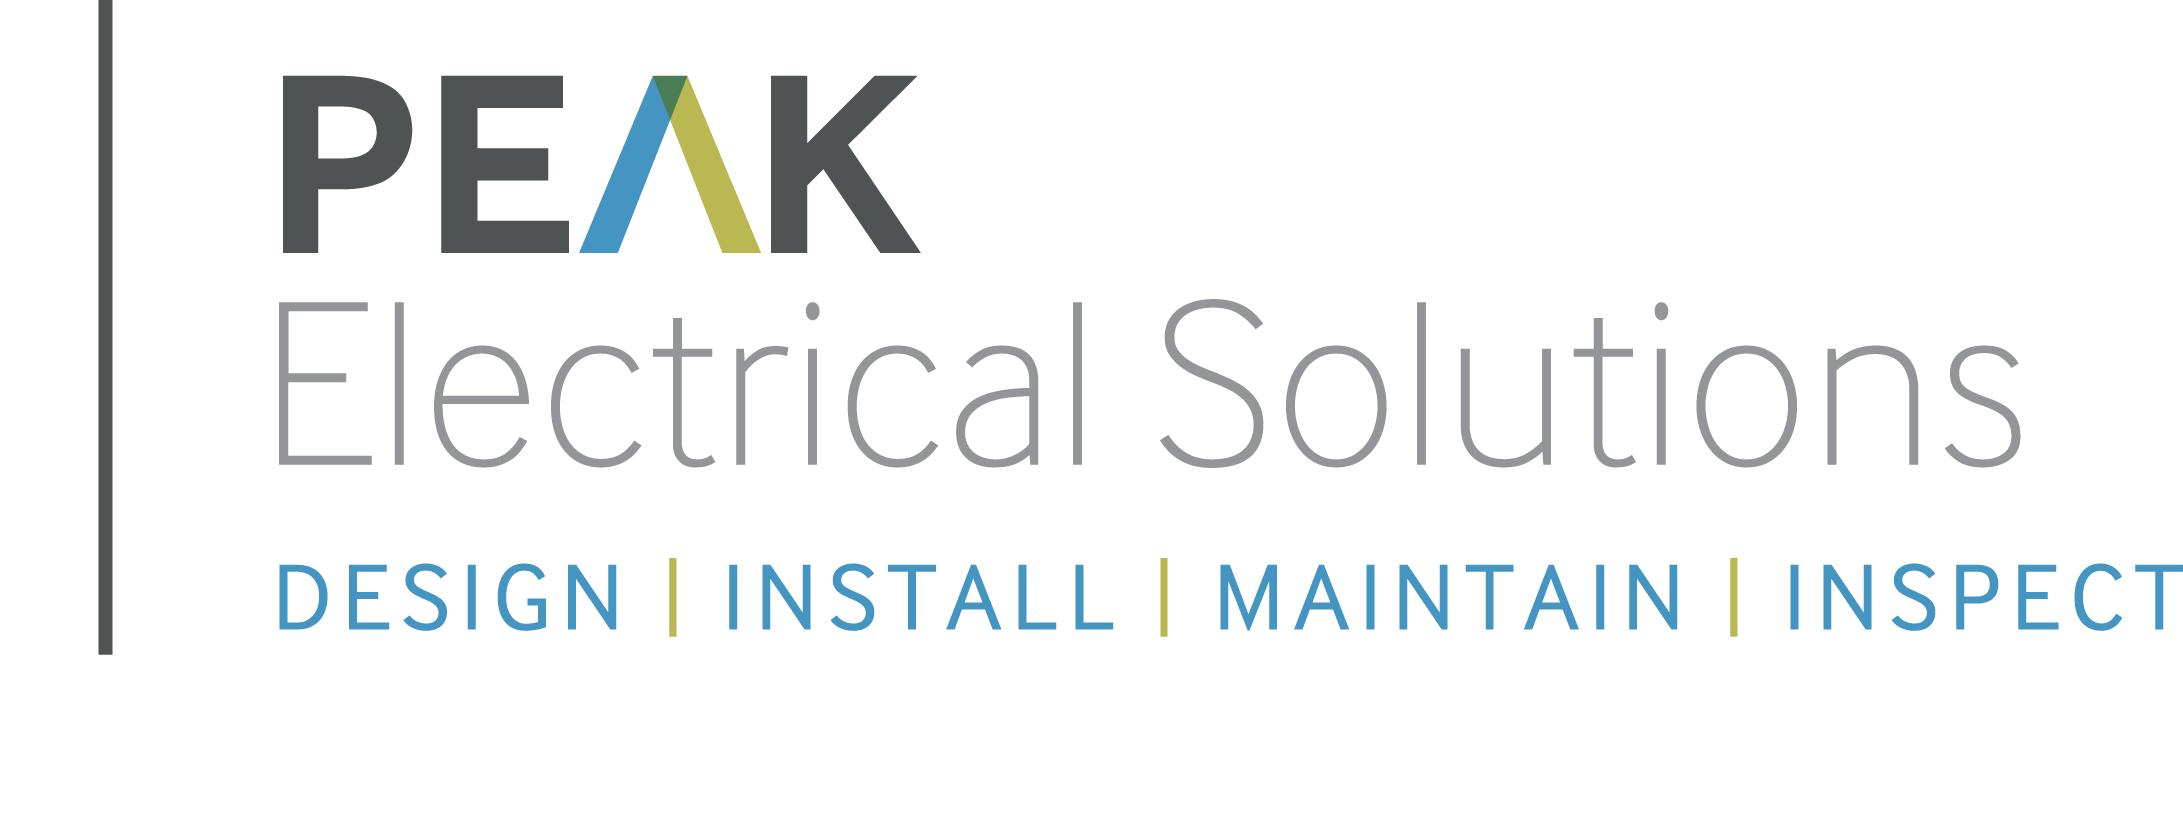 Peak Electrical Solutions